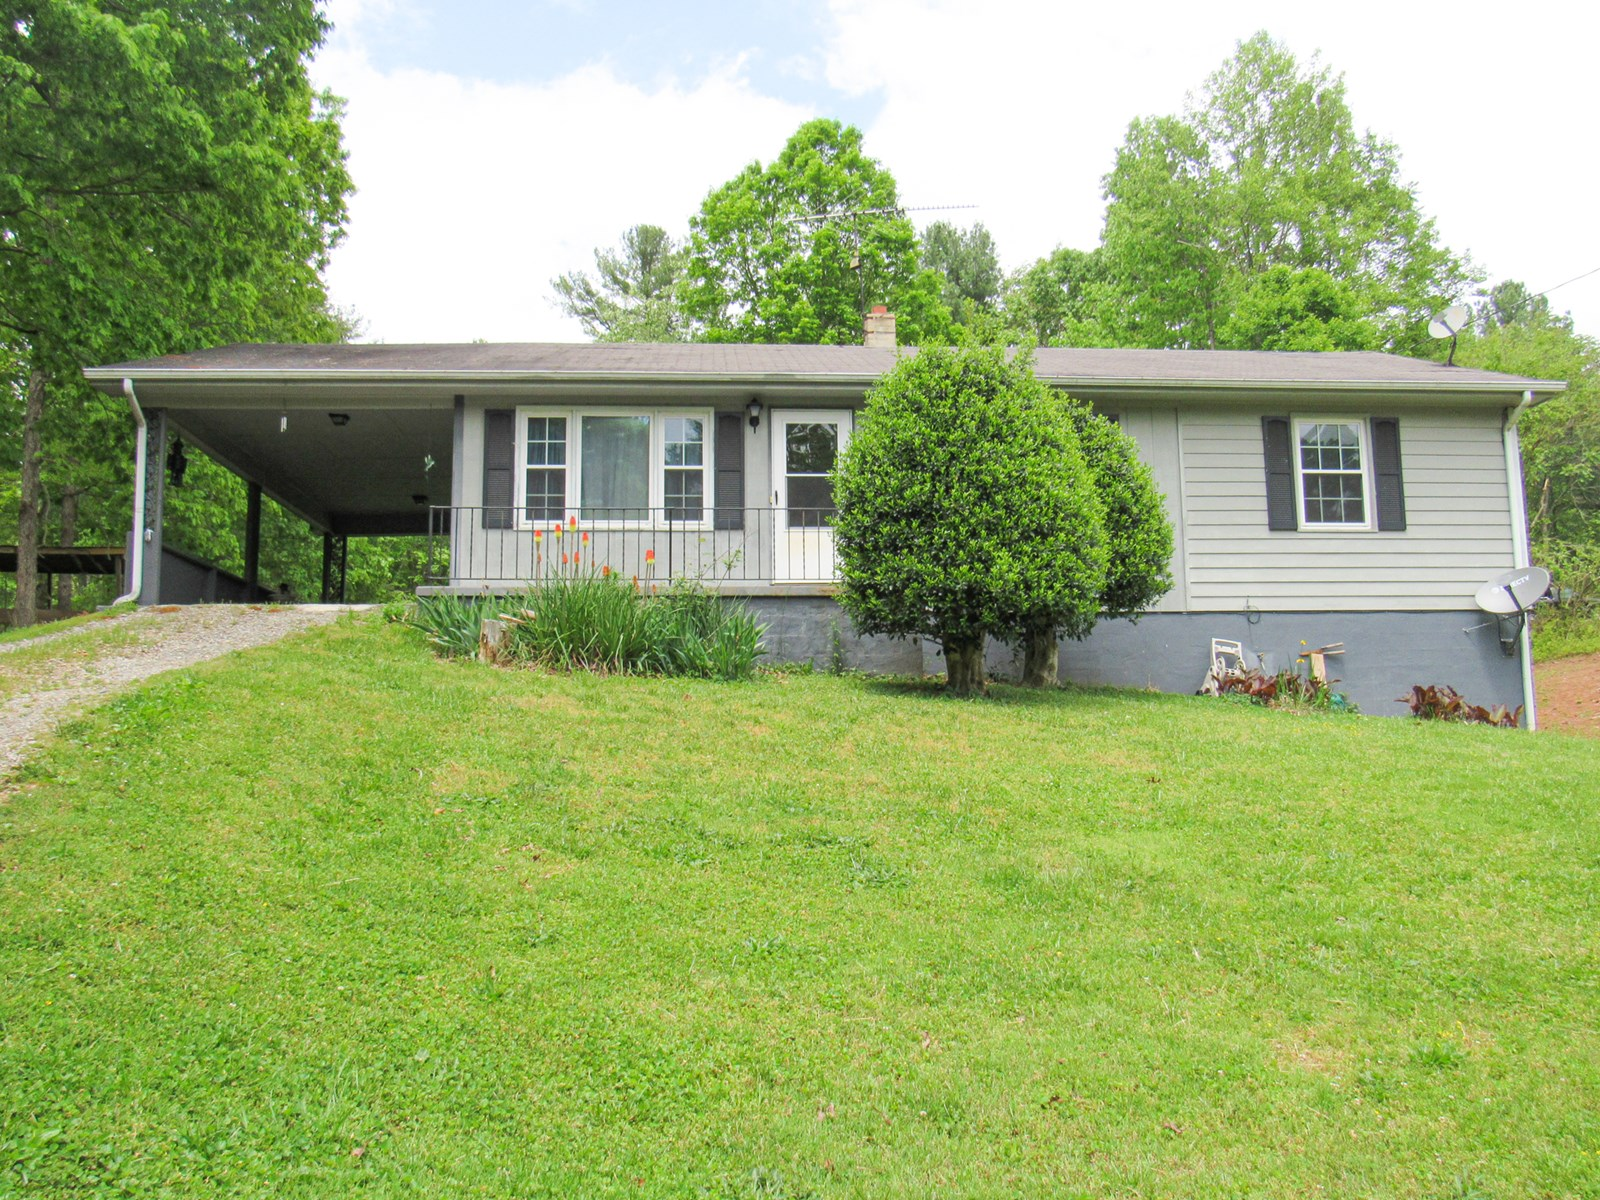 Country Home for Sale in Franklin County VA